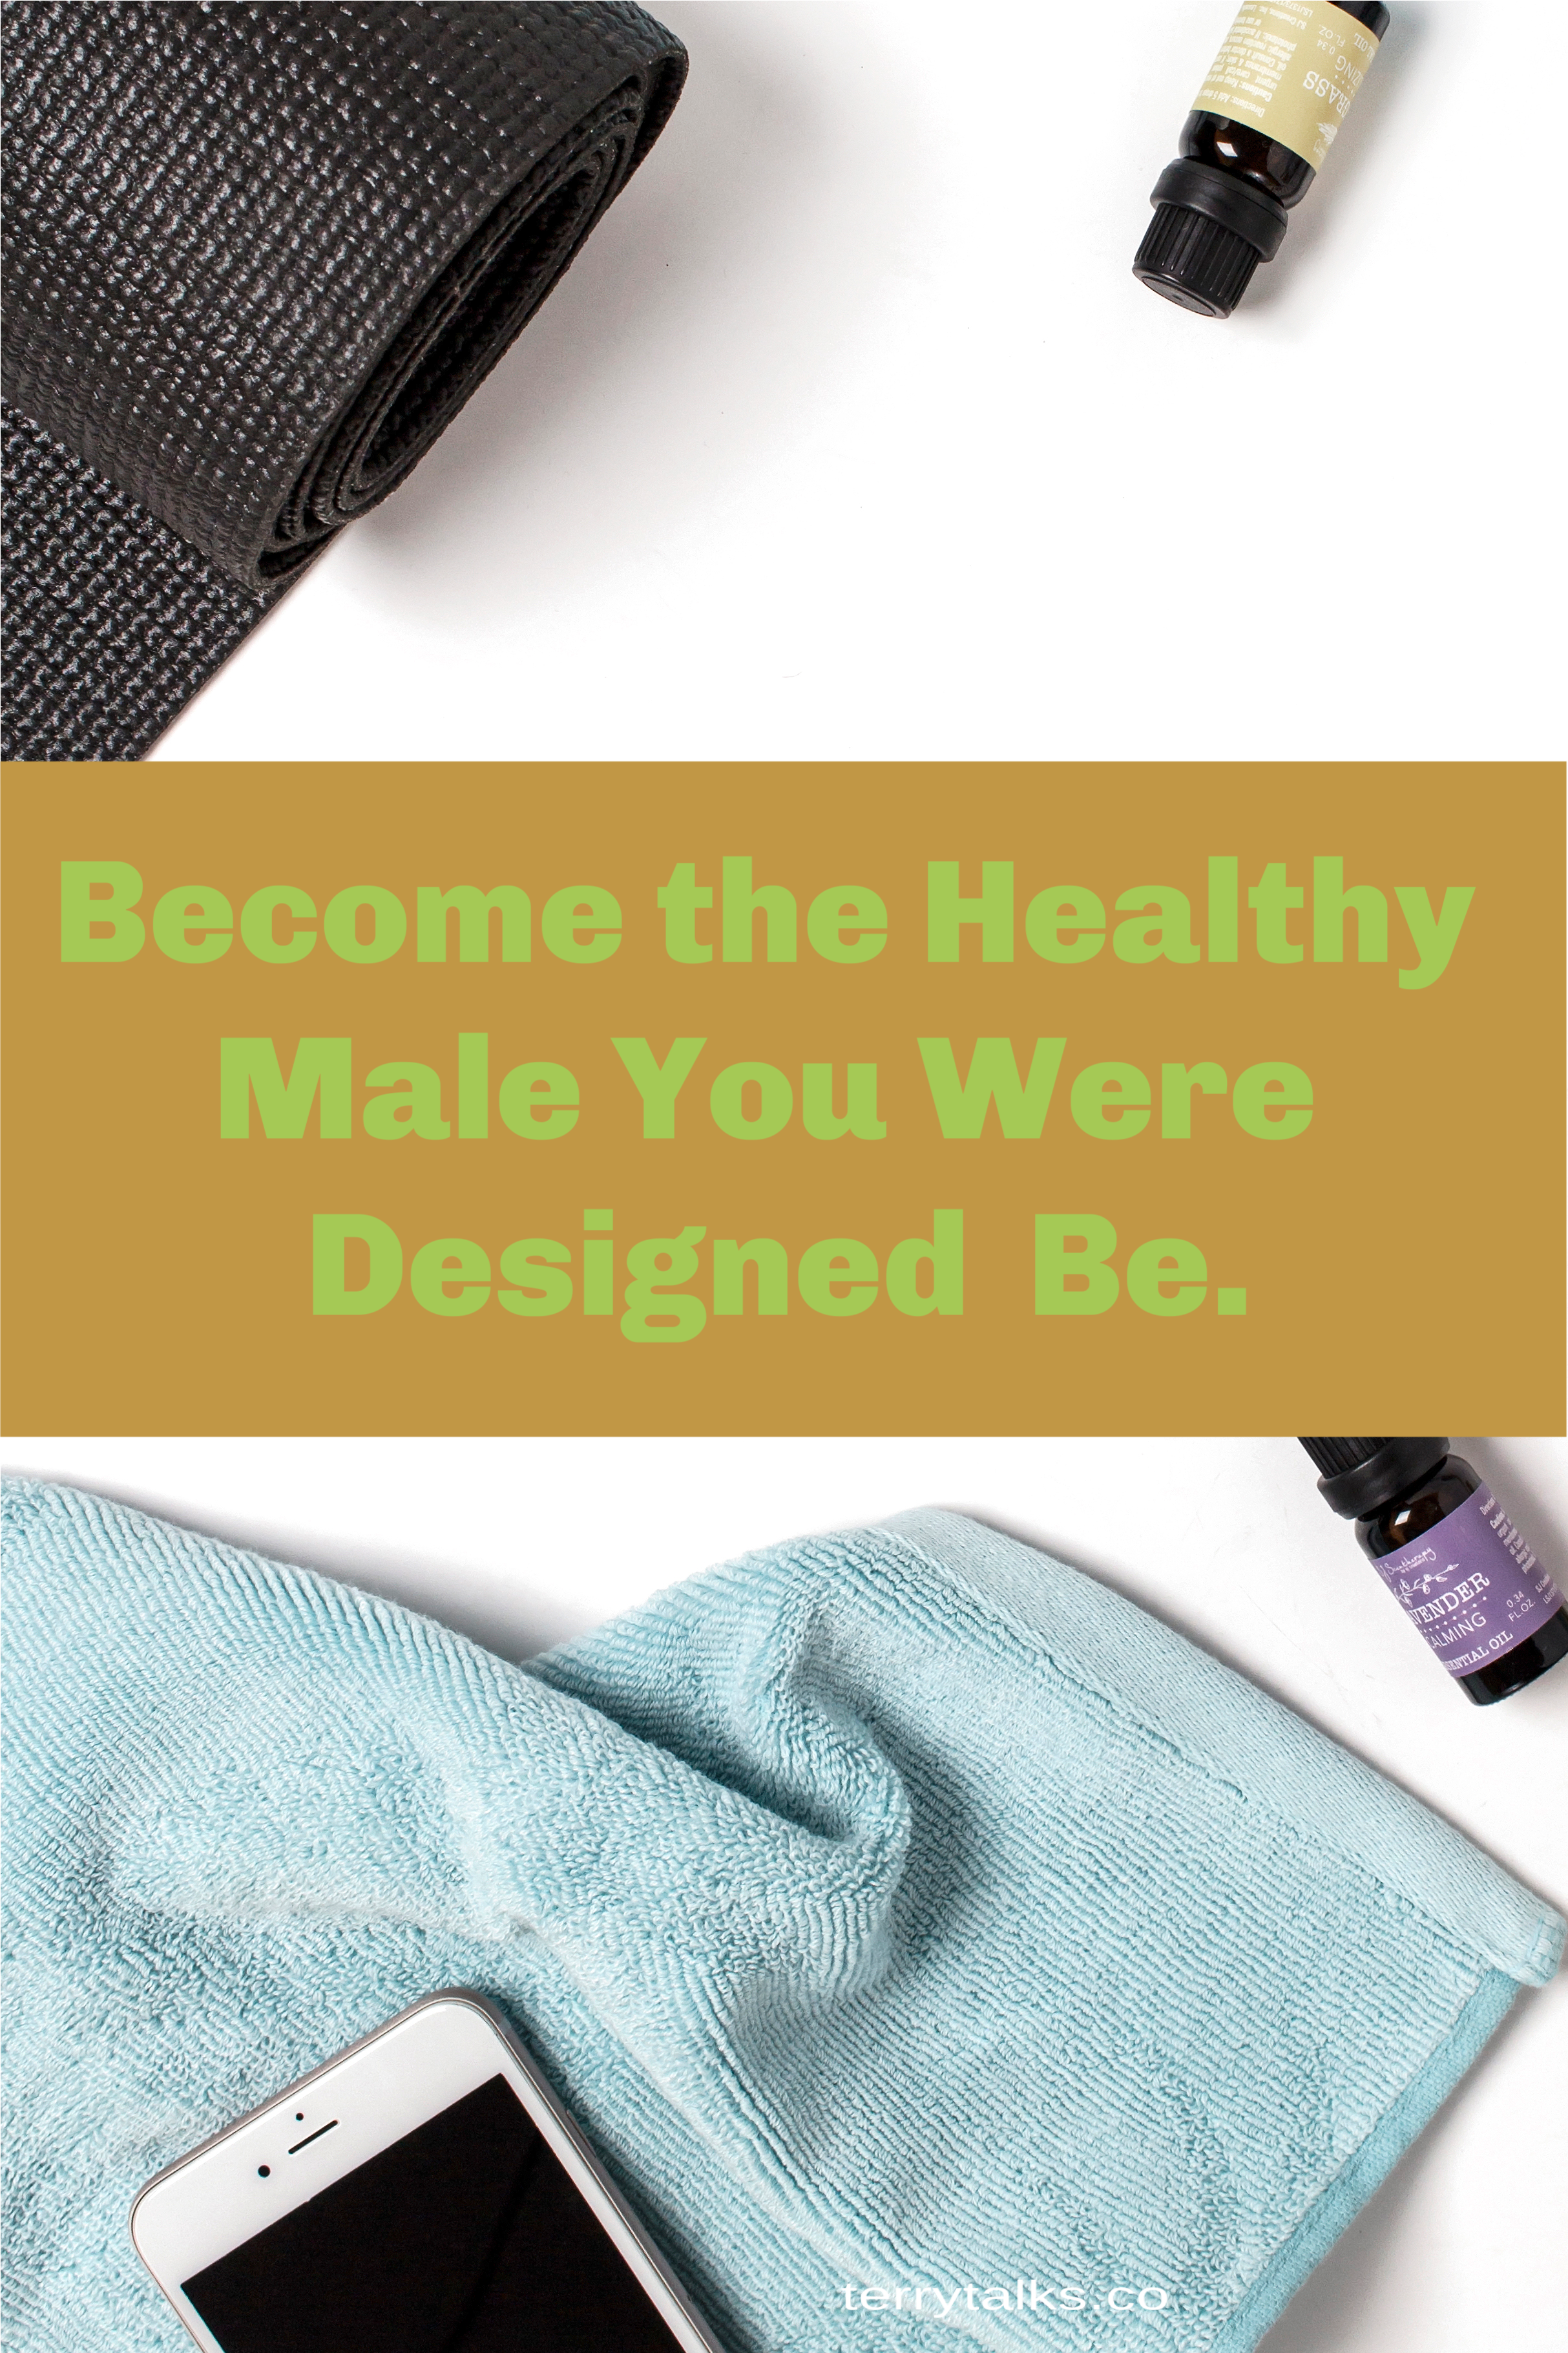 Become the Healthy Male